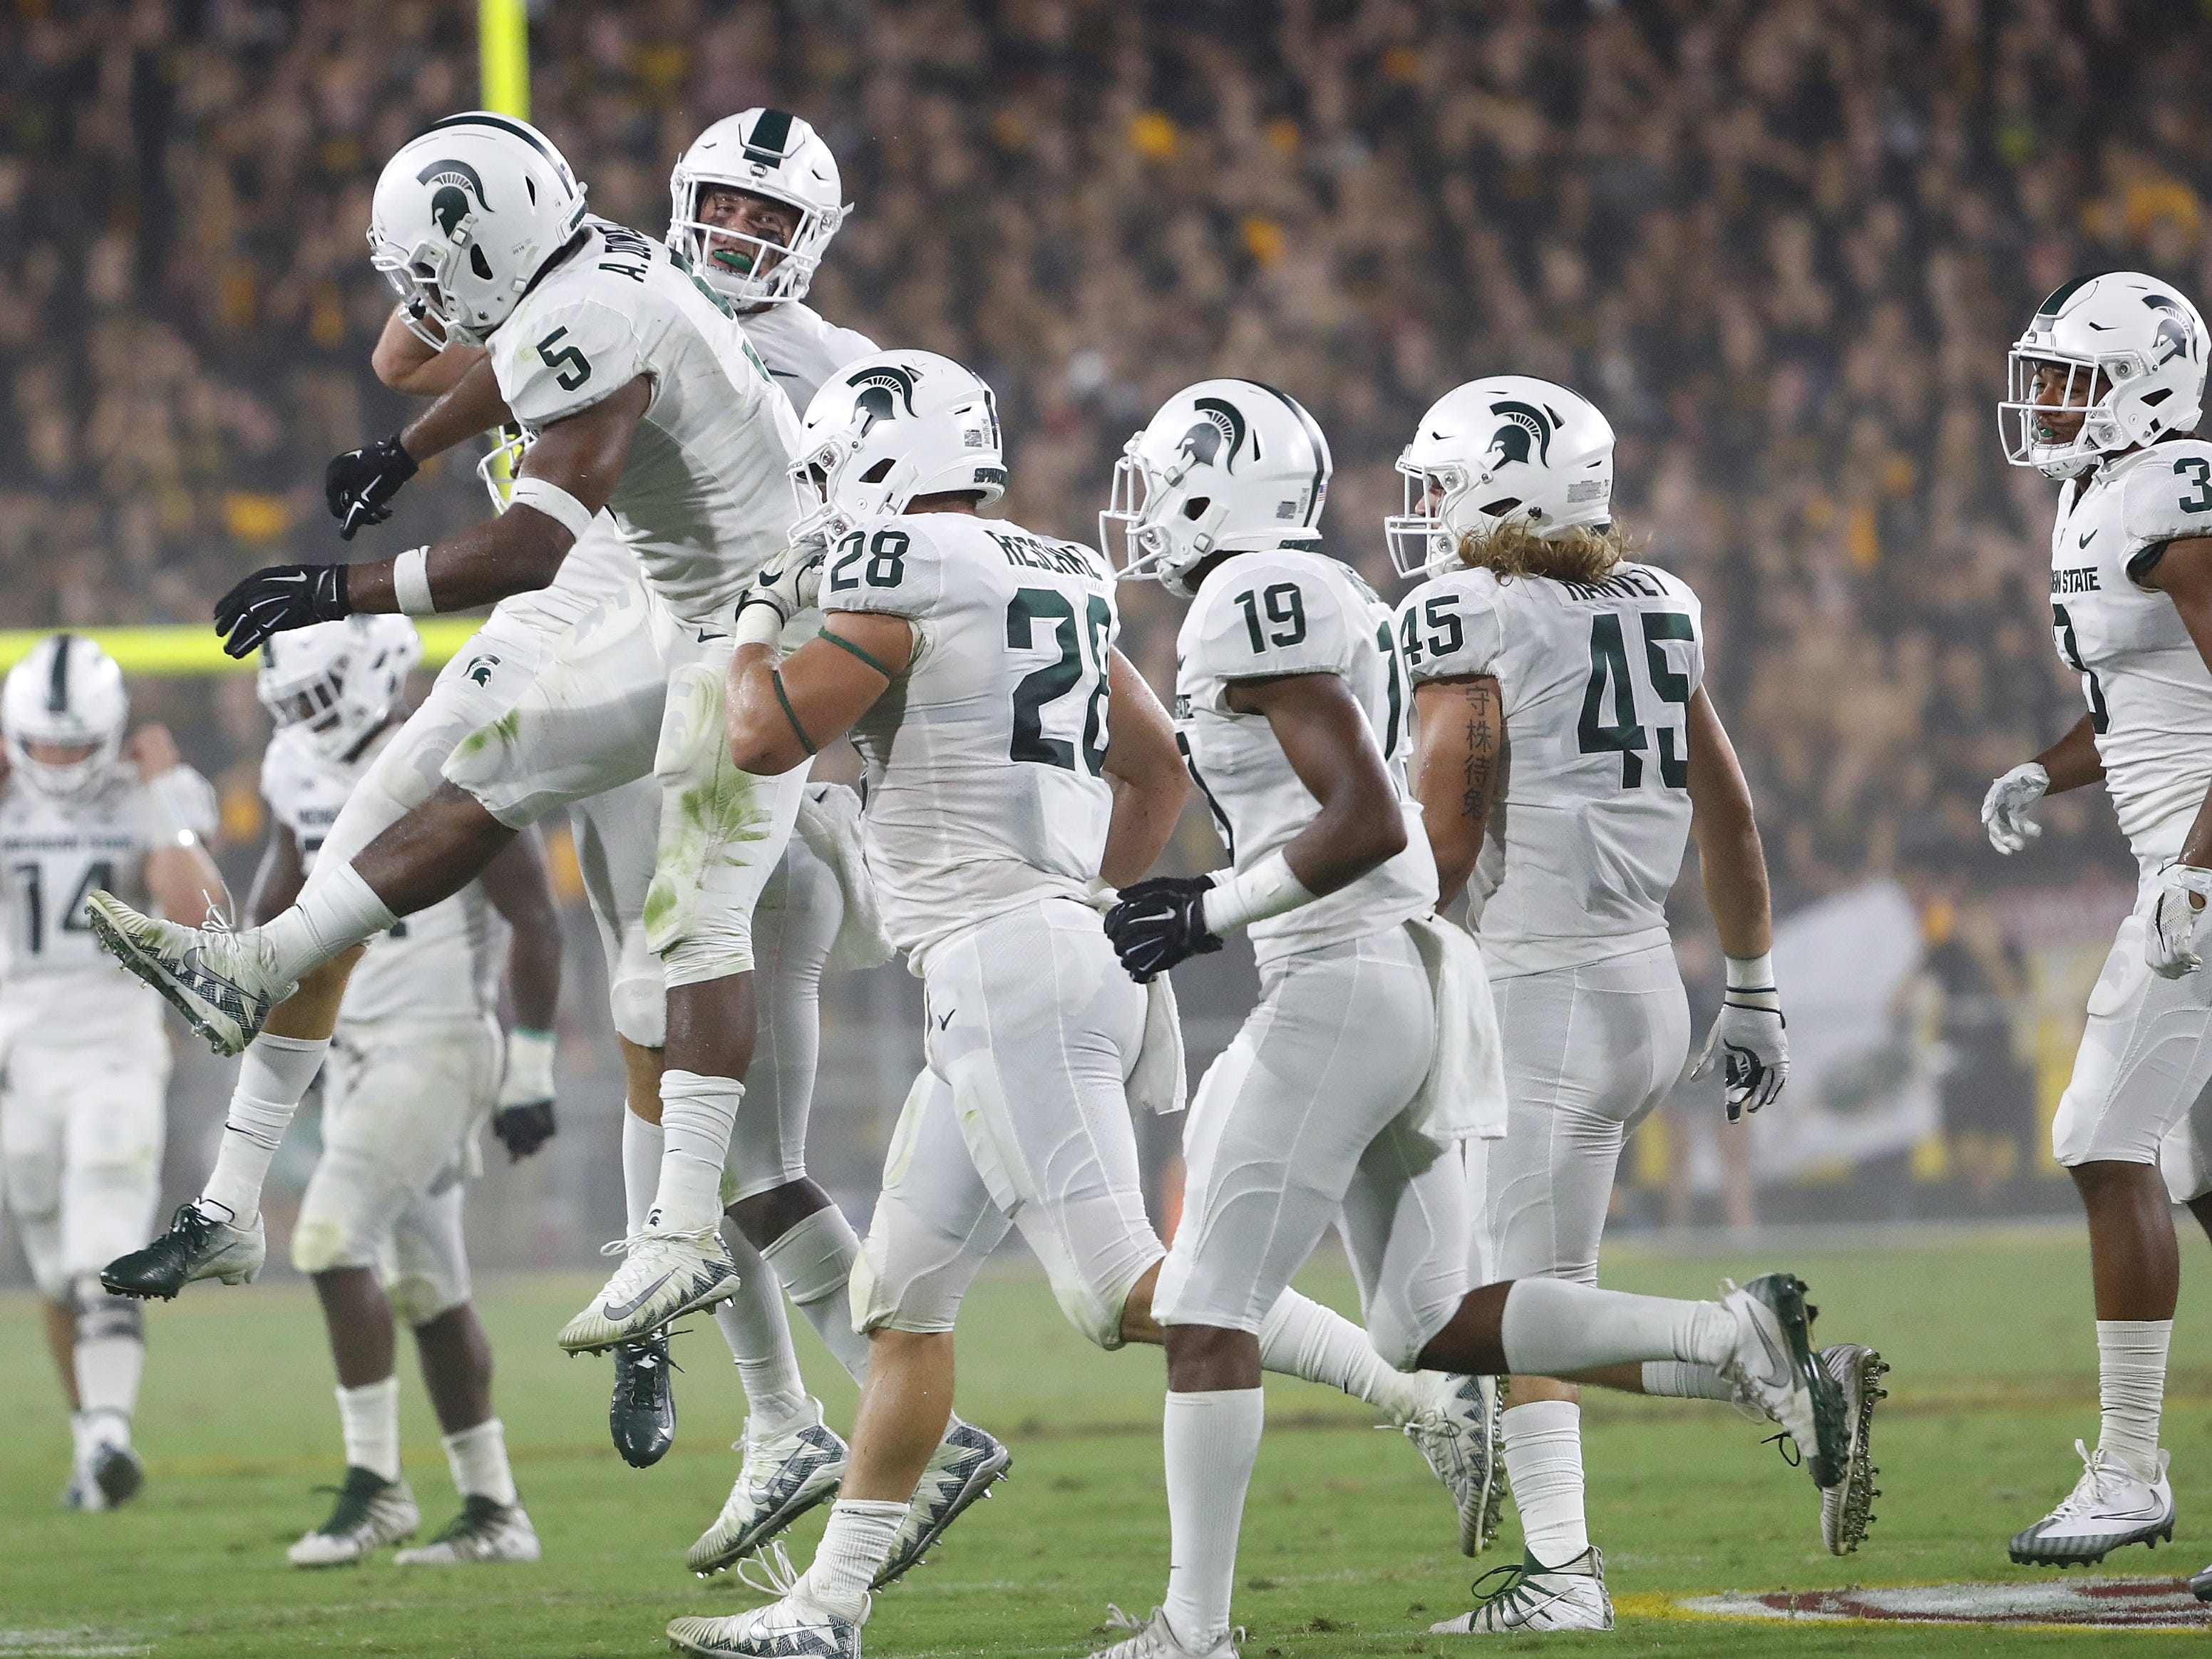 Michigan State's Matt Morrissey (10) jumps into teammate Andrew Dowell (5) after recording an interception during the second quarter at Sun Devil Stadium in Tempe, Ariz. on Sept. 8, 2018.